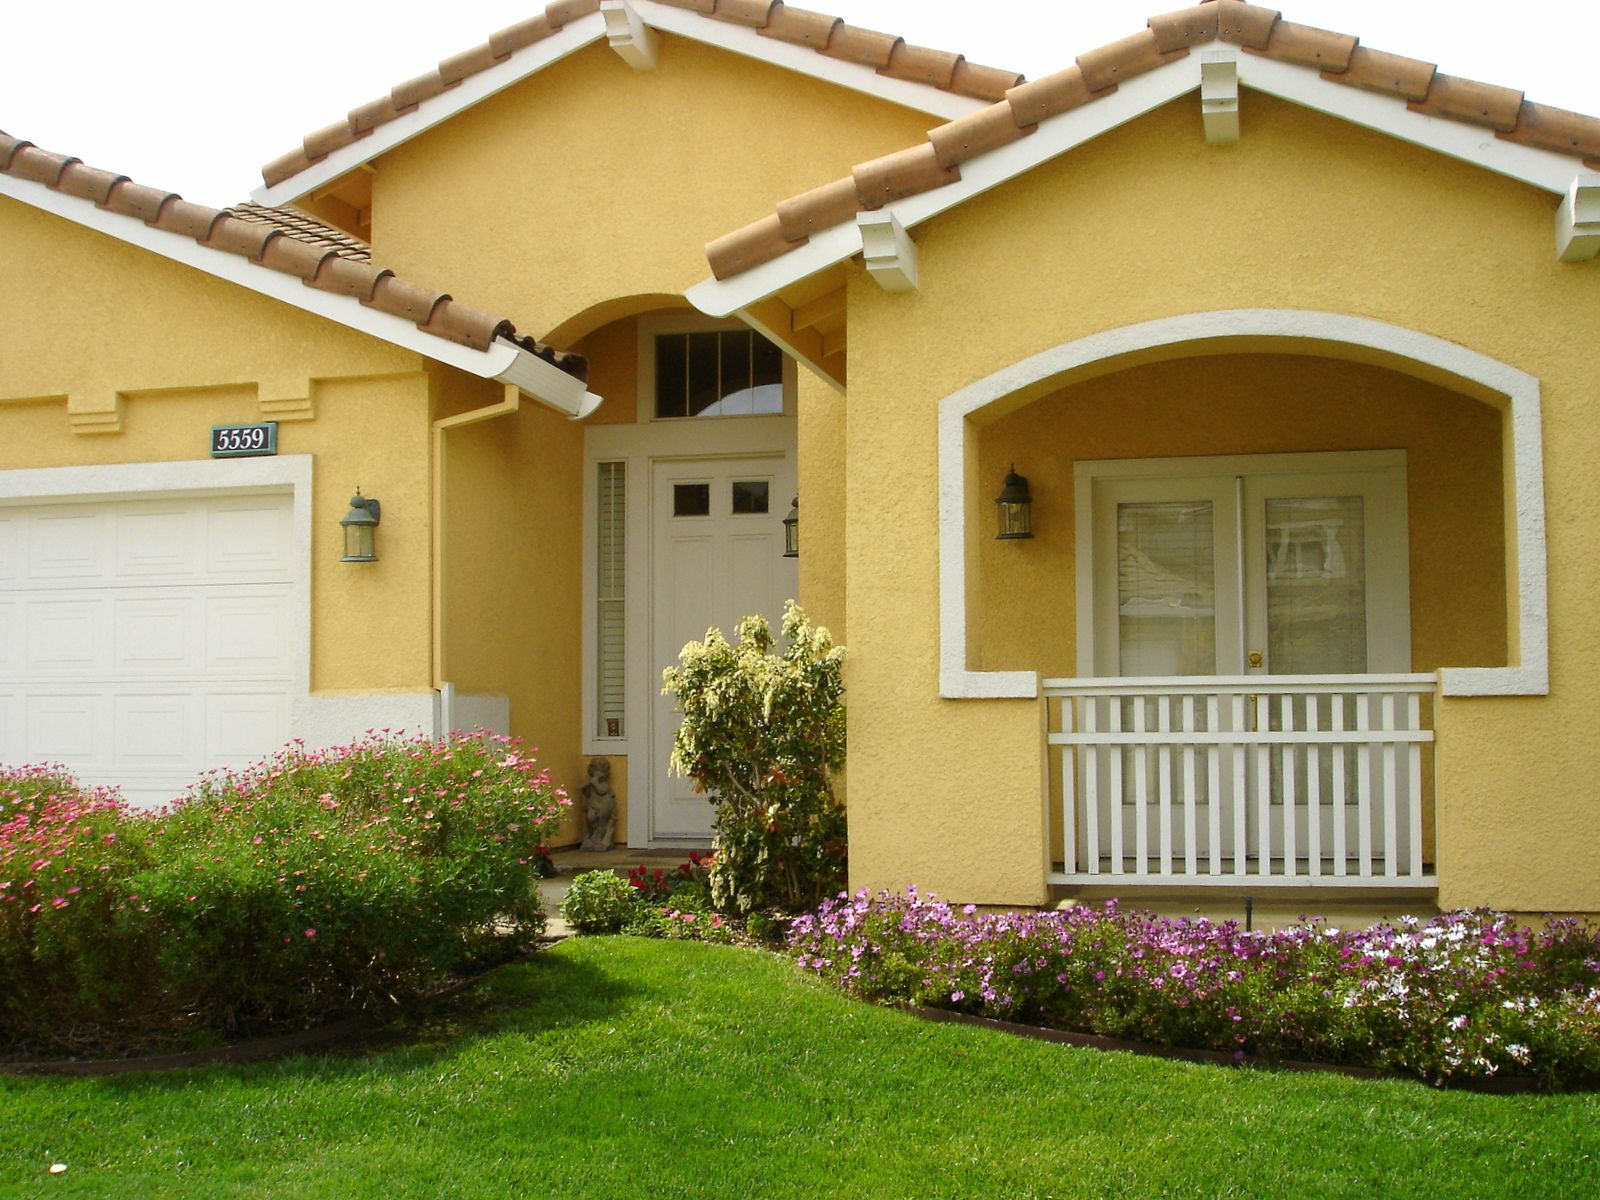 Exterior cool yellow exterior paint feats with nice white garage exterior paint colors - Paint schemes exterior minimalist ...